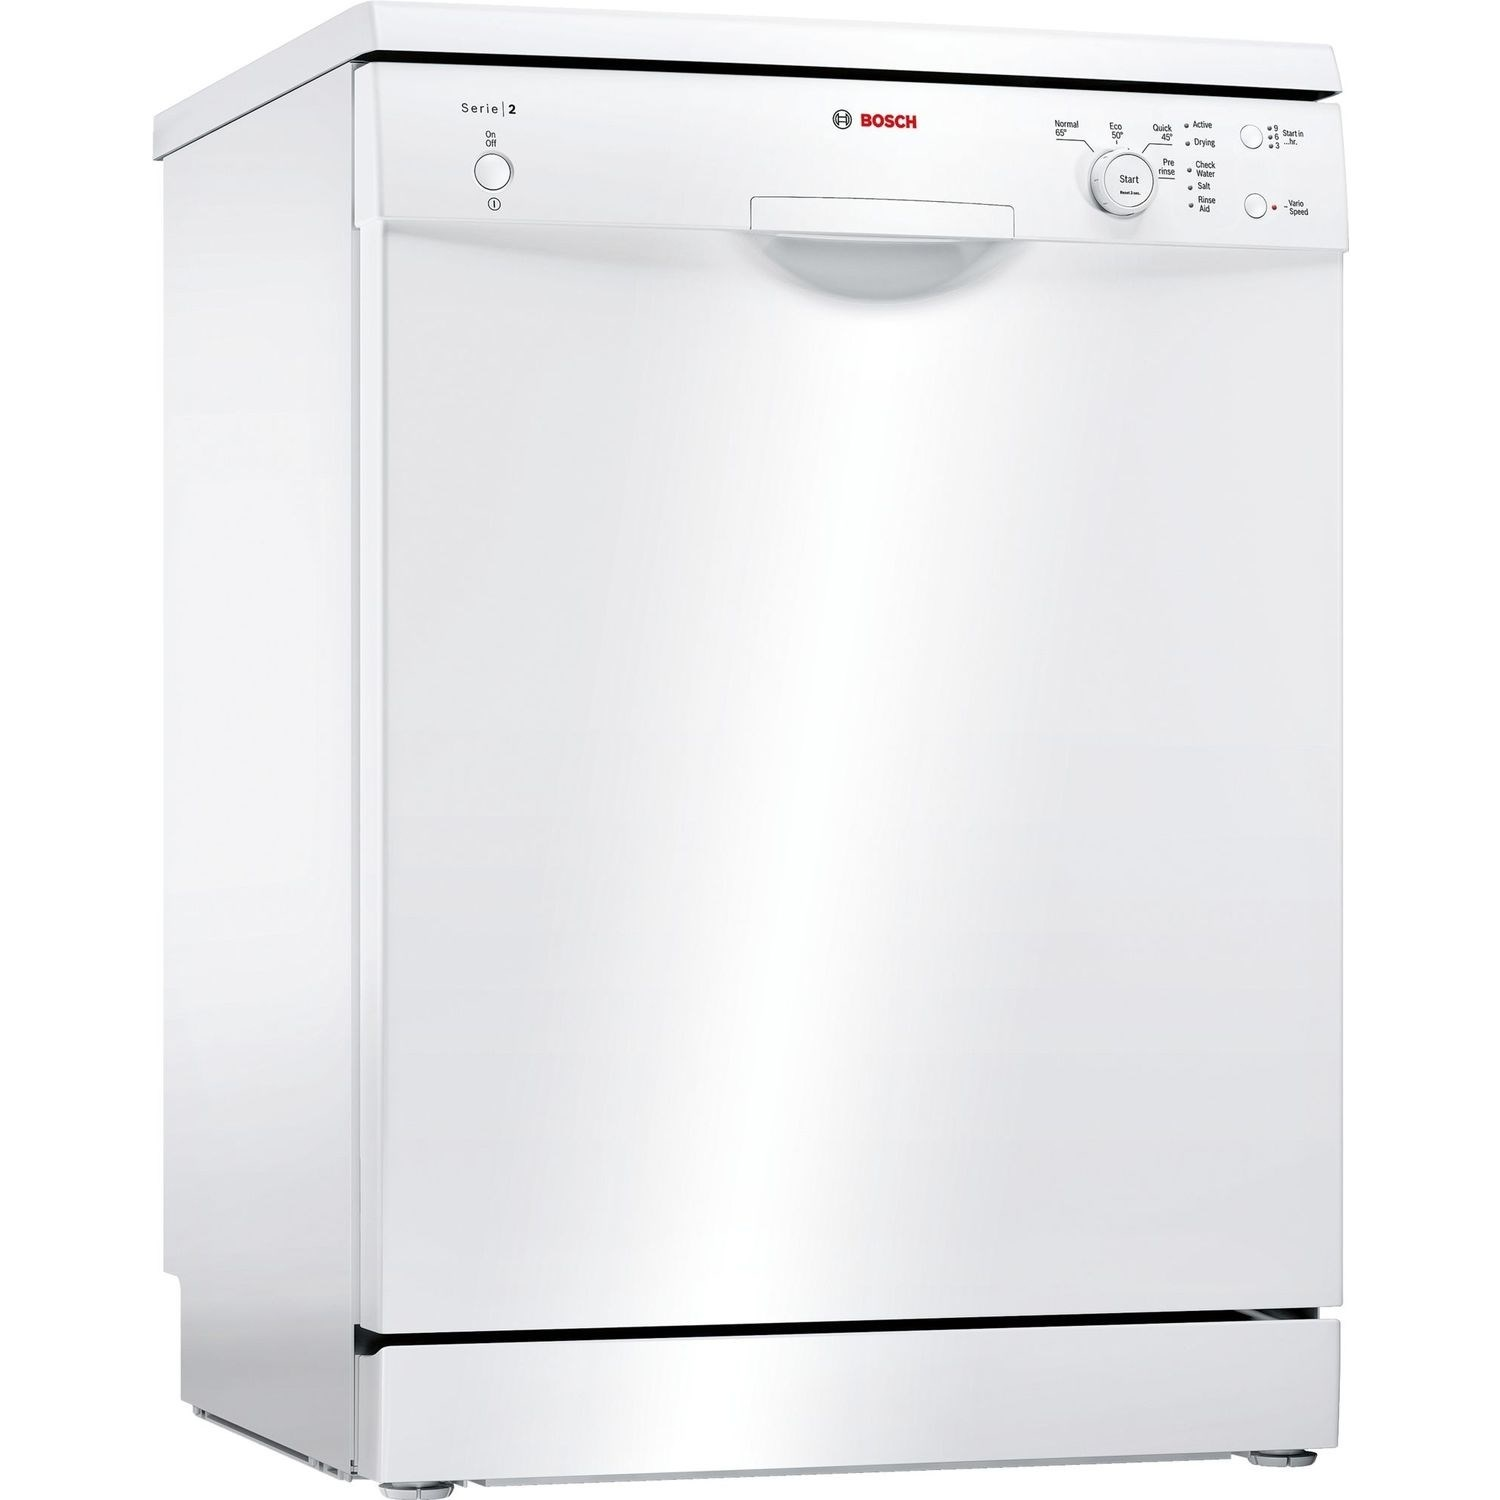 BOSCH SMS24AW01G Freestanding Dishwasher